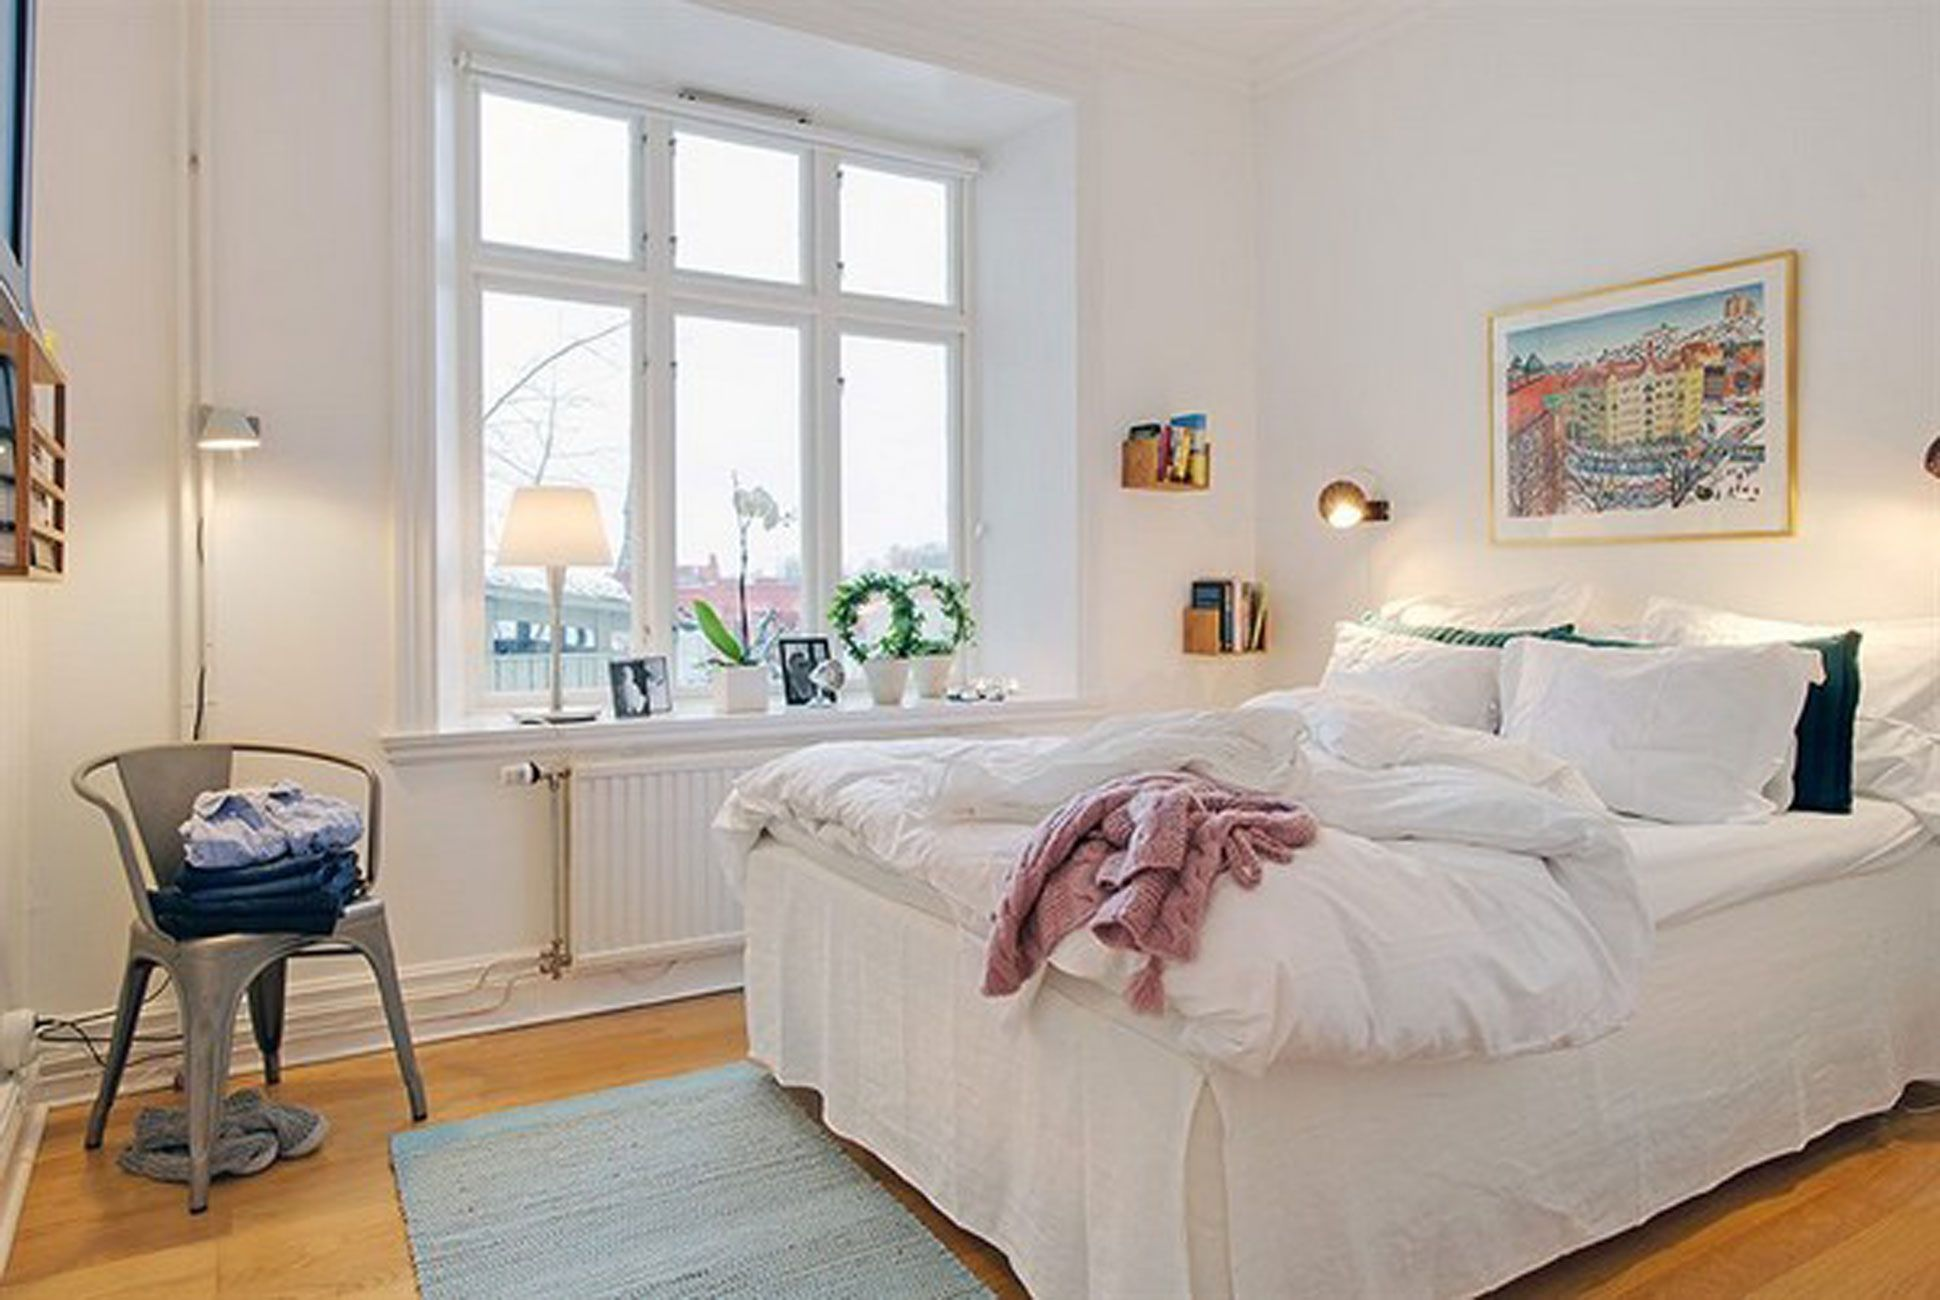 apartments nice apartment bedroom for girl with laminate floor white wall and furniture home pinterest apartment bedrooms nice apartments and